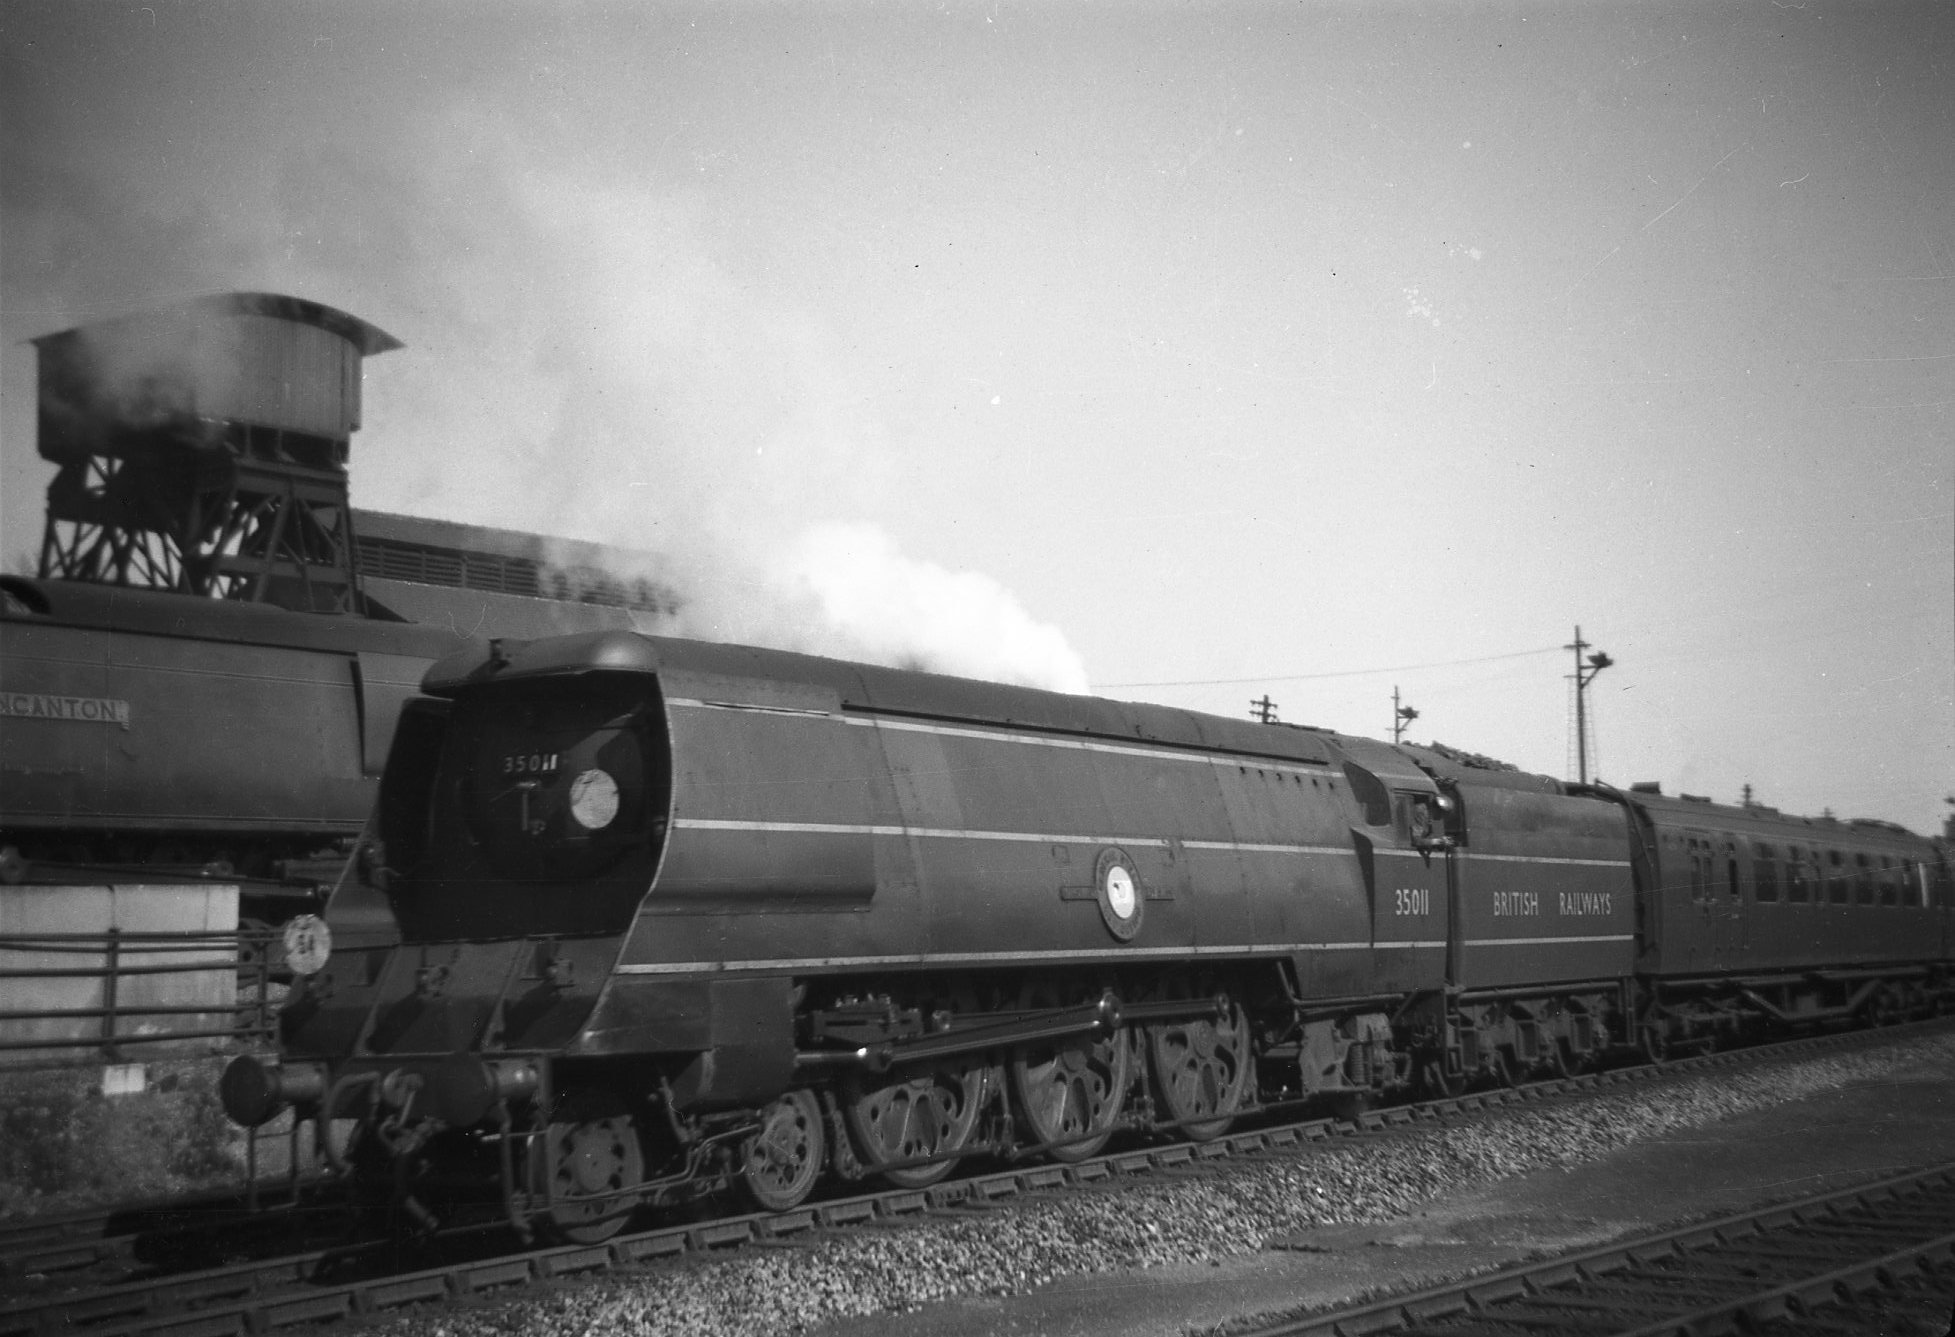 35011 at Bournemouth in 1950 (c) Richard Dixon